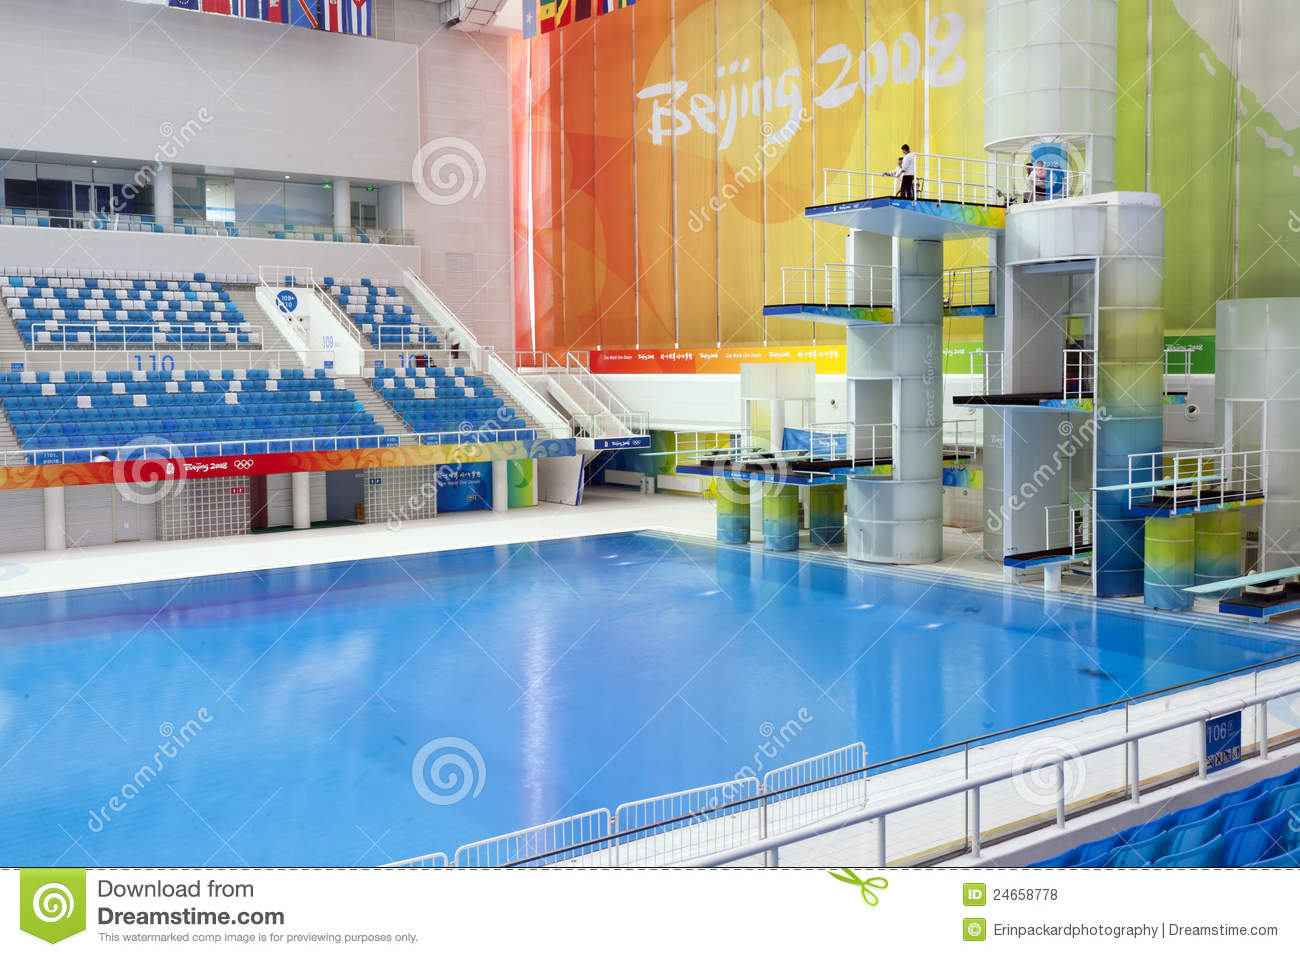 Olympic Diving Platforms Editorial Stock Photo Image Of Center 24658778